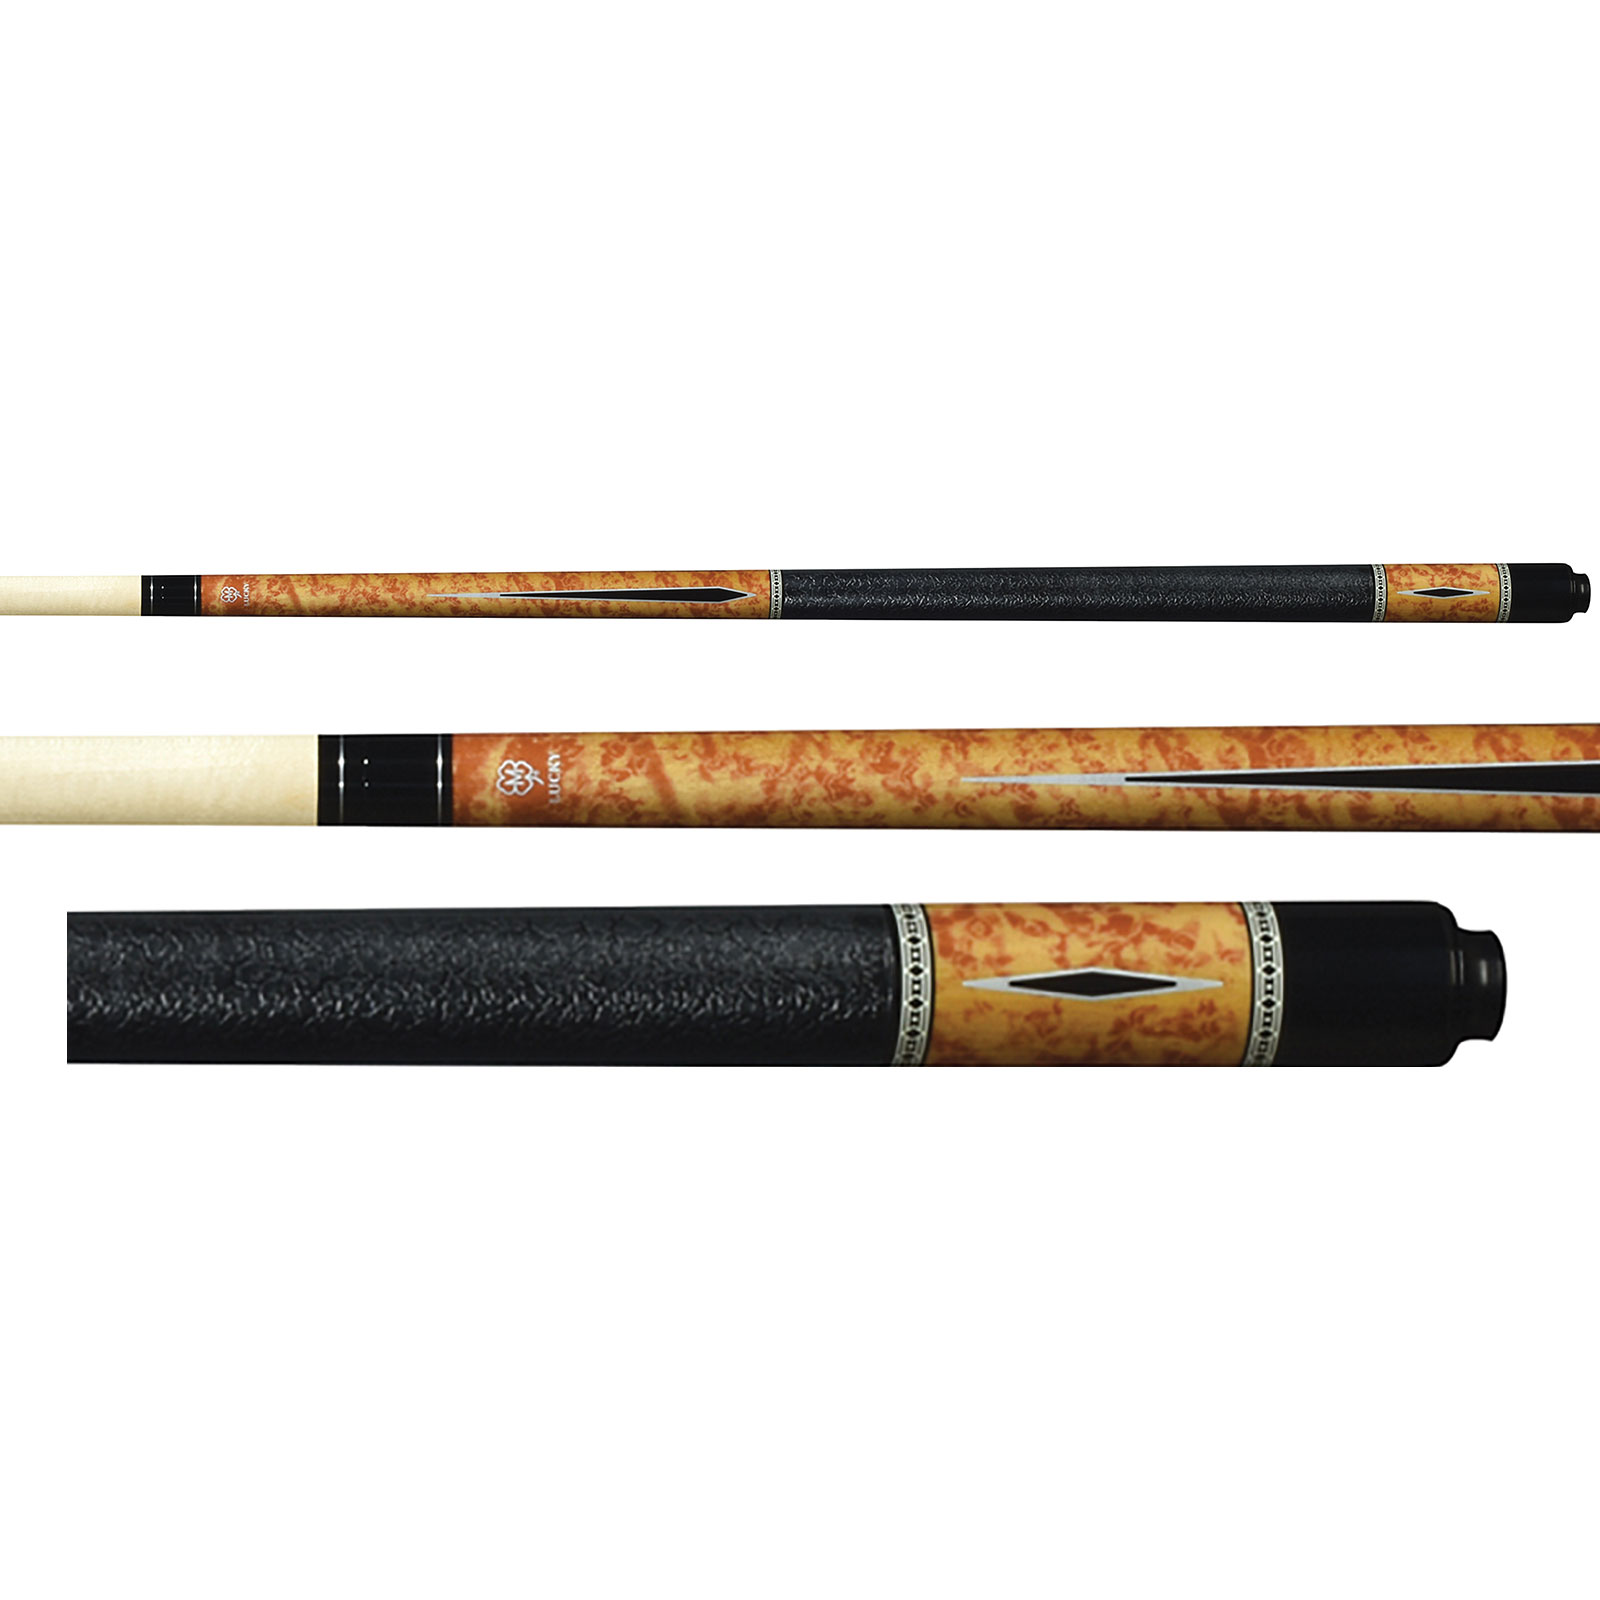 Mcdermott Lucky Pool Cue Stick L57 Brown